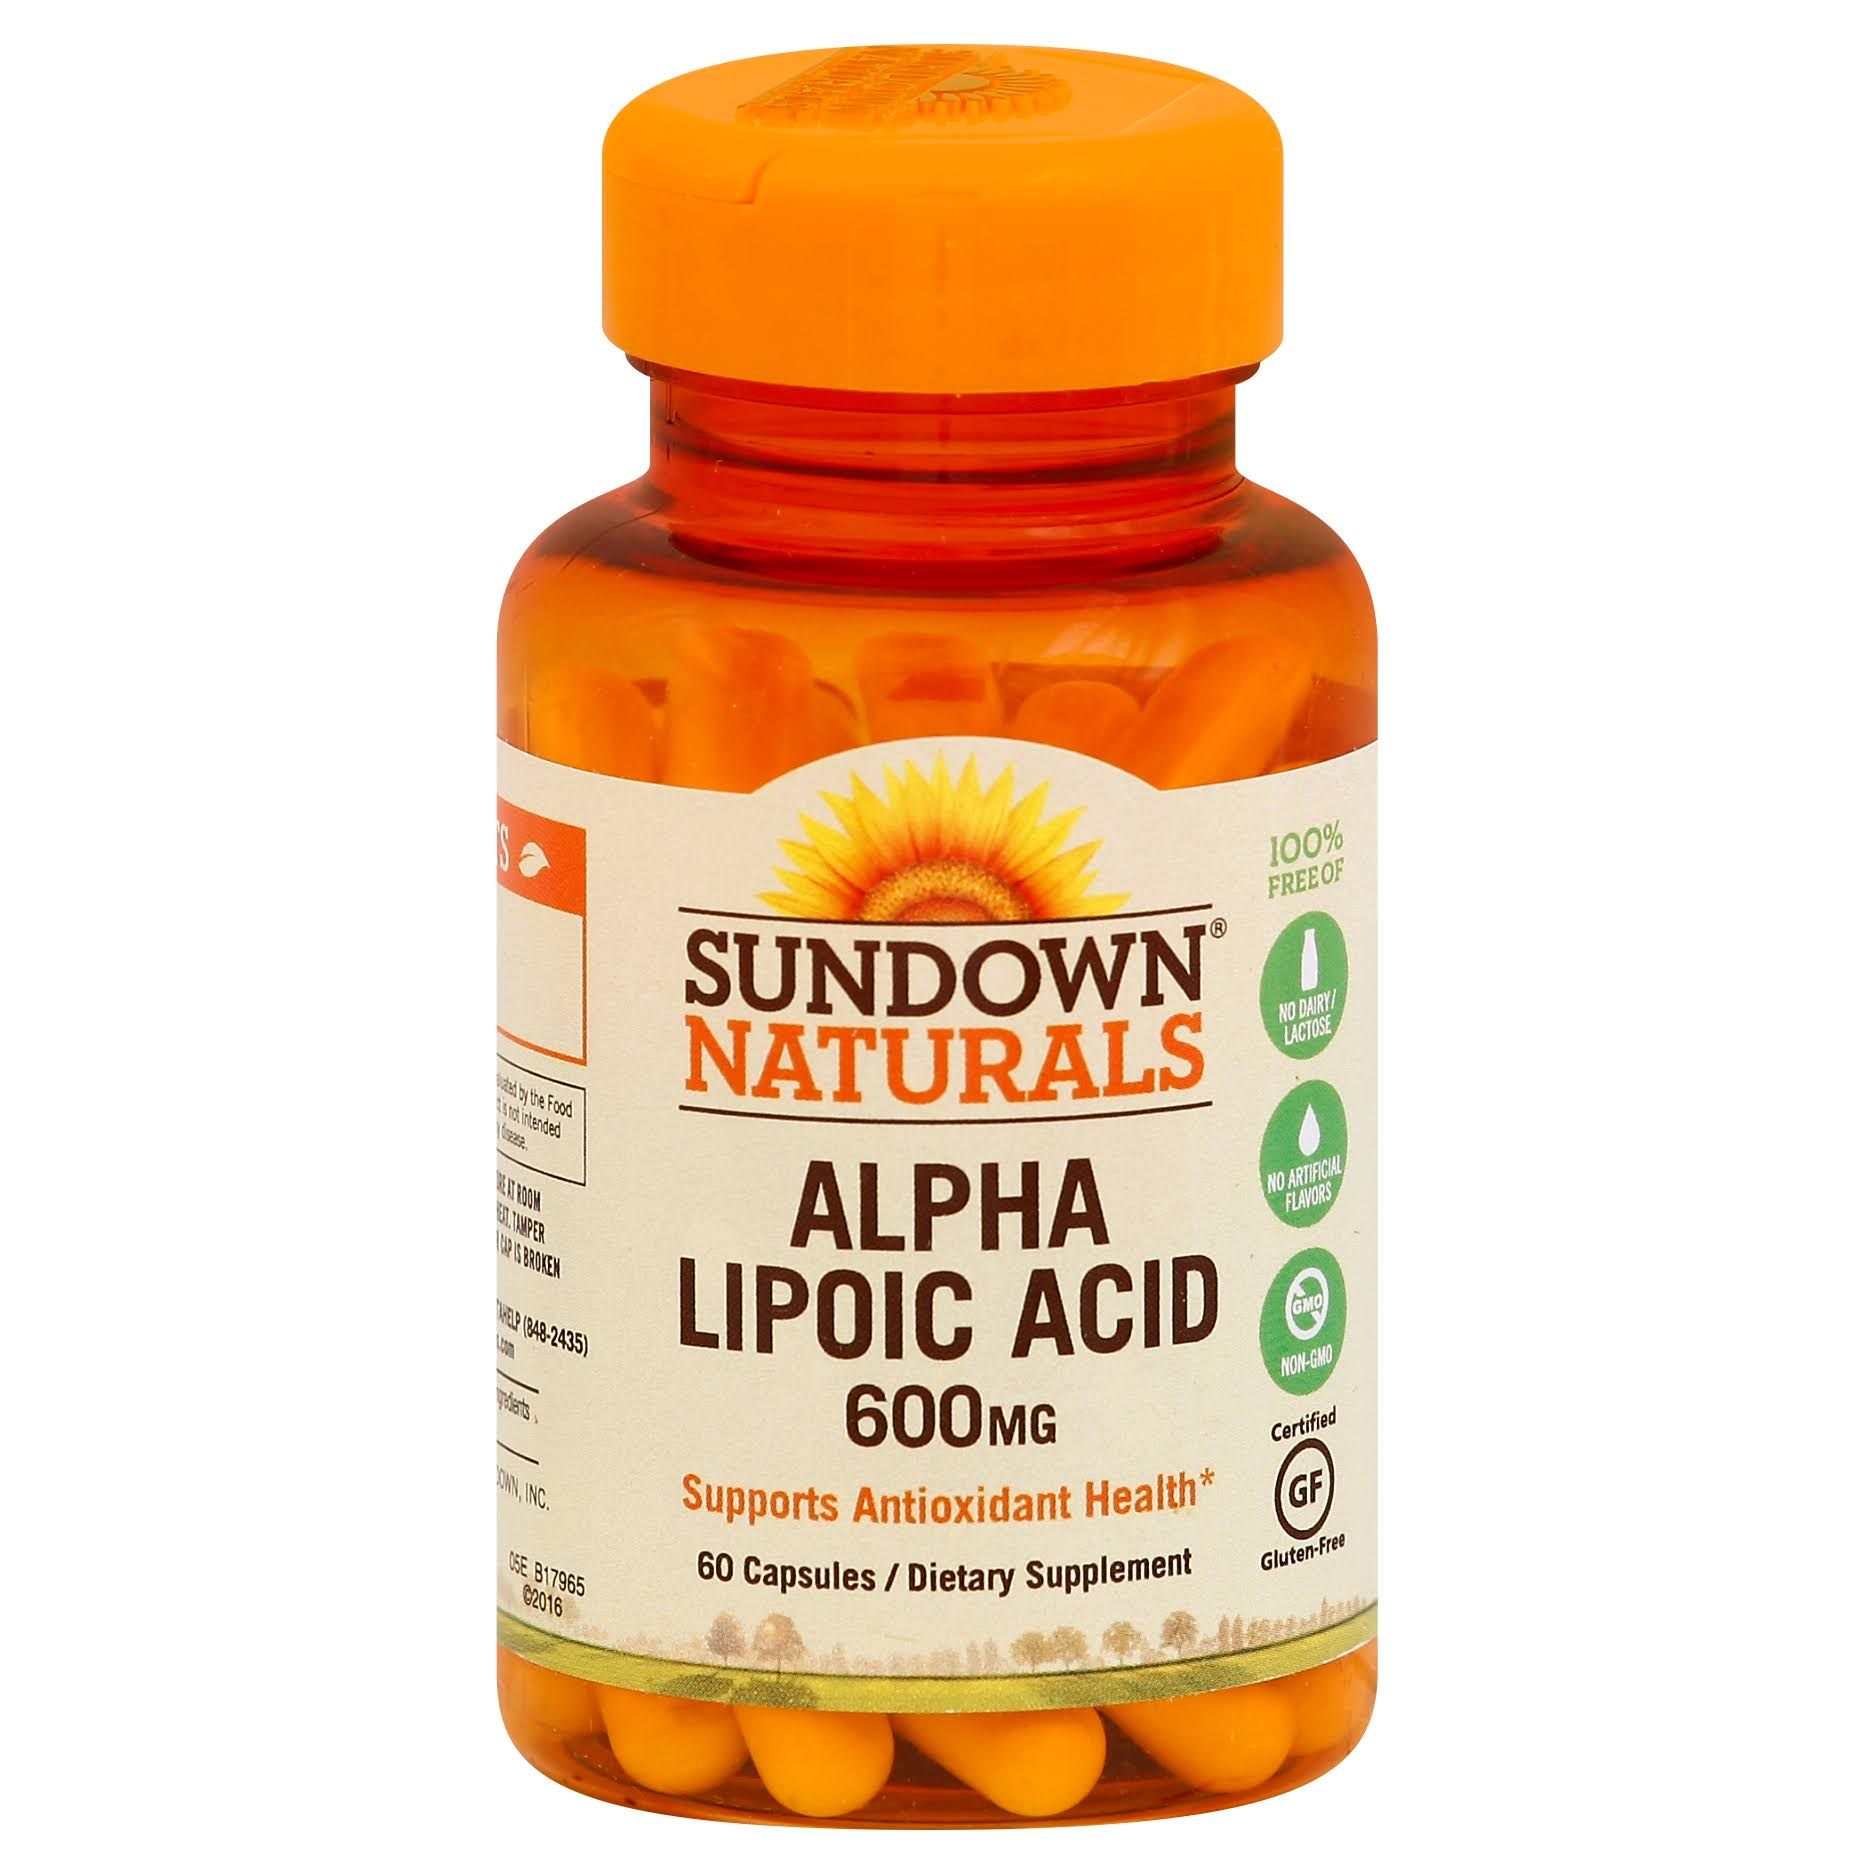 Sundown Naturals Super Alpha Lipoic Acid - 600mg, 60 Capsules